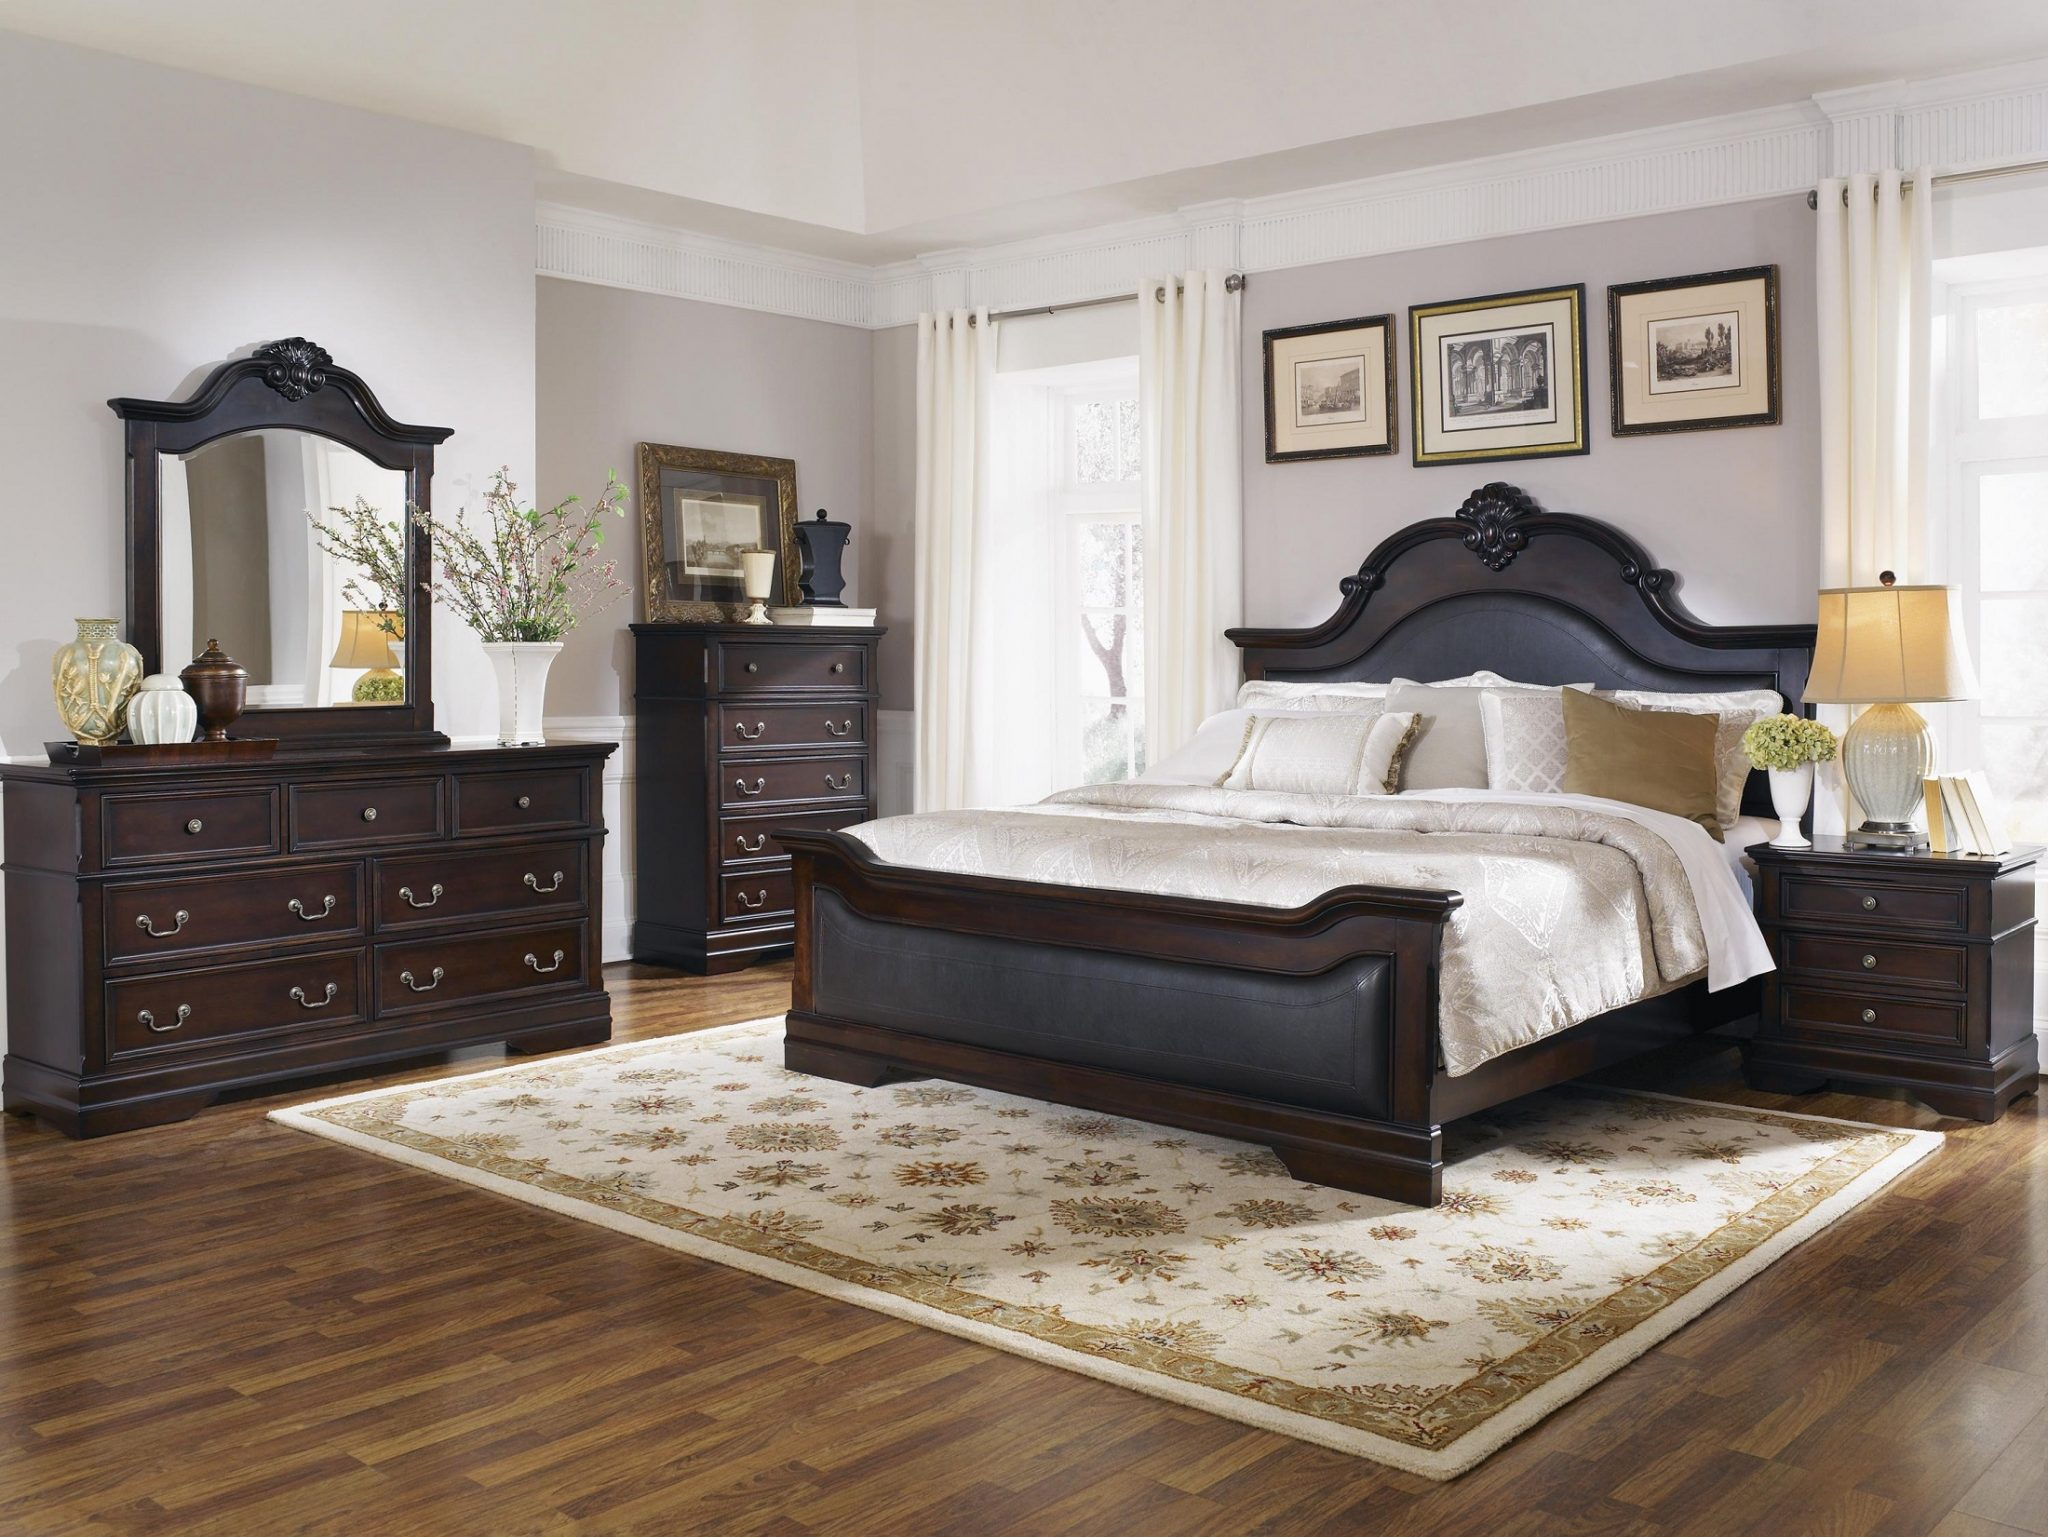 Coaster Furniture Cambridge Upholstered Panel Bedroom Set